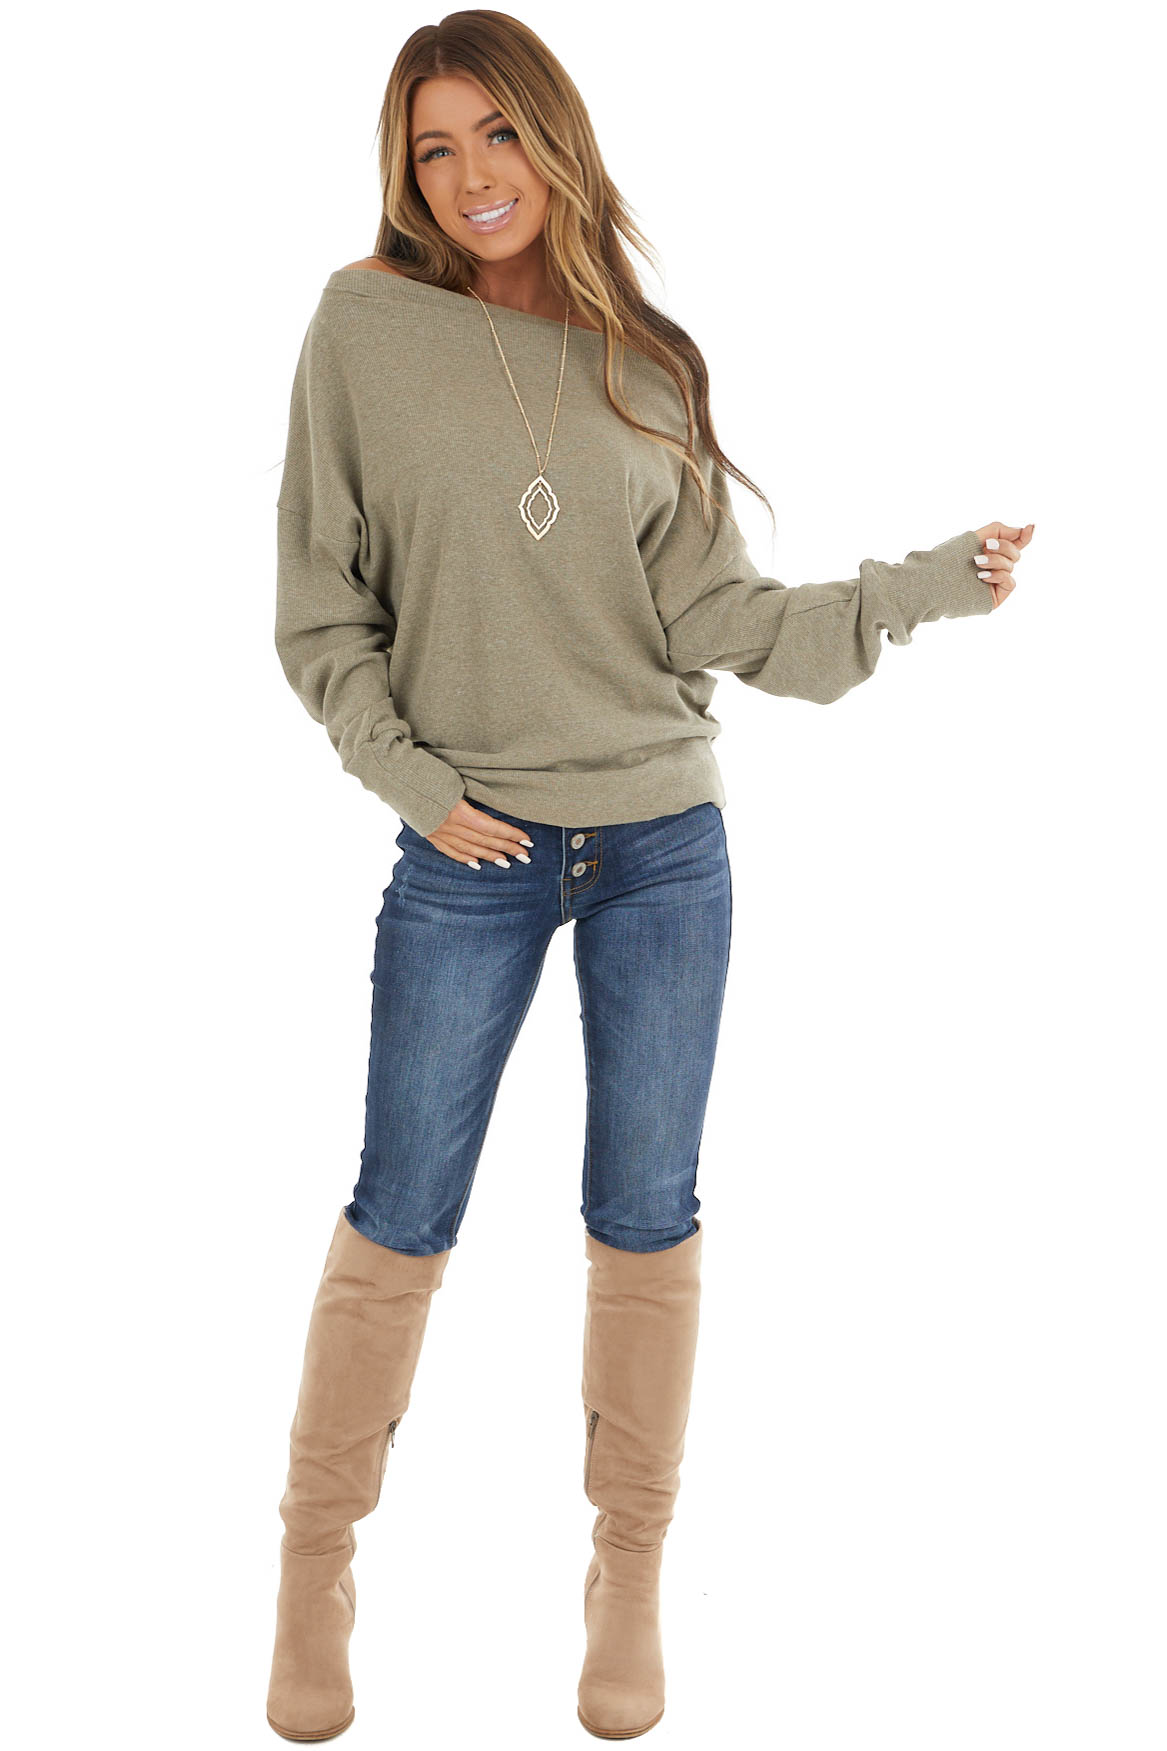 Faded Olive Boatneck Ribbed Knit Top with Zip Up Shoulder